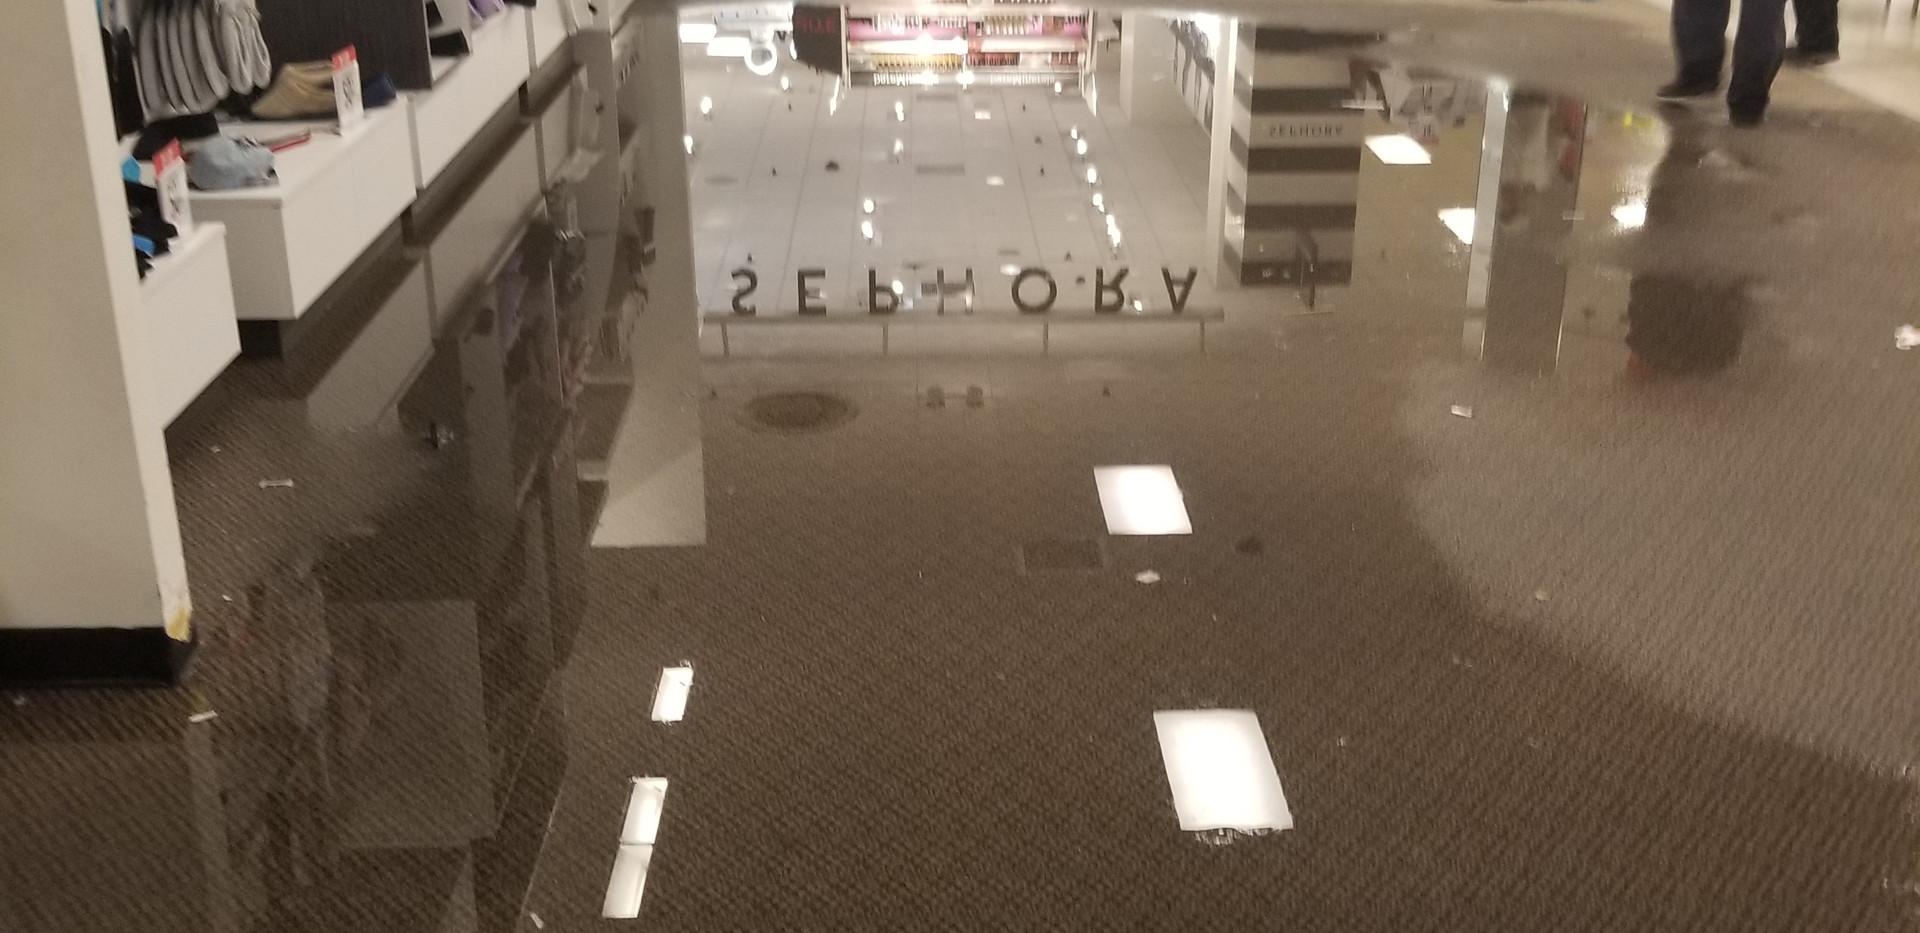 Sprinkler head broke and flooded JCPenny